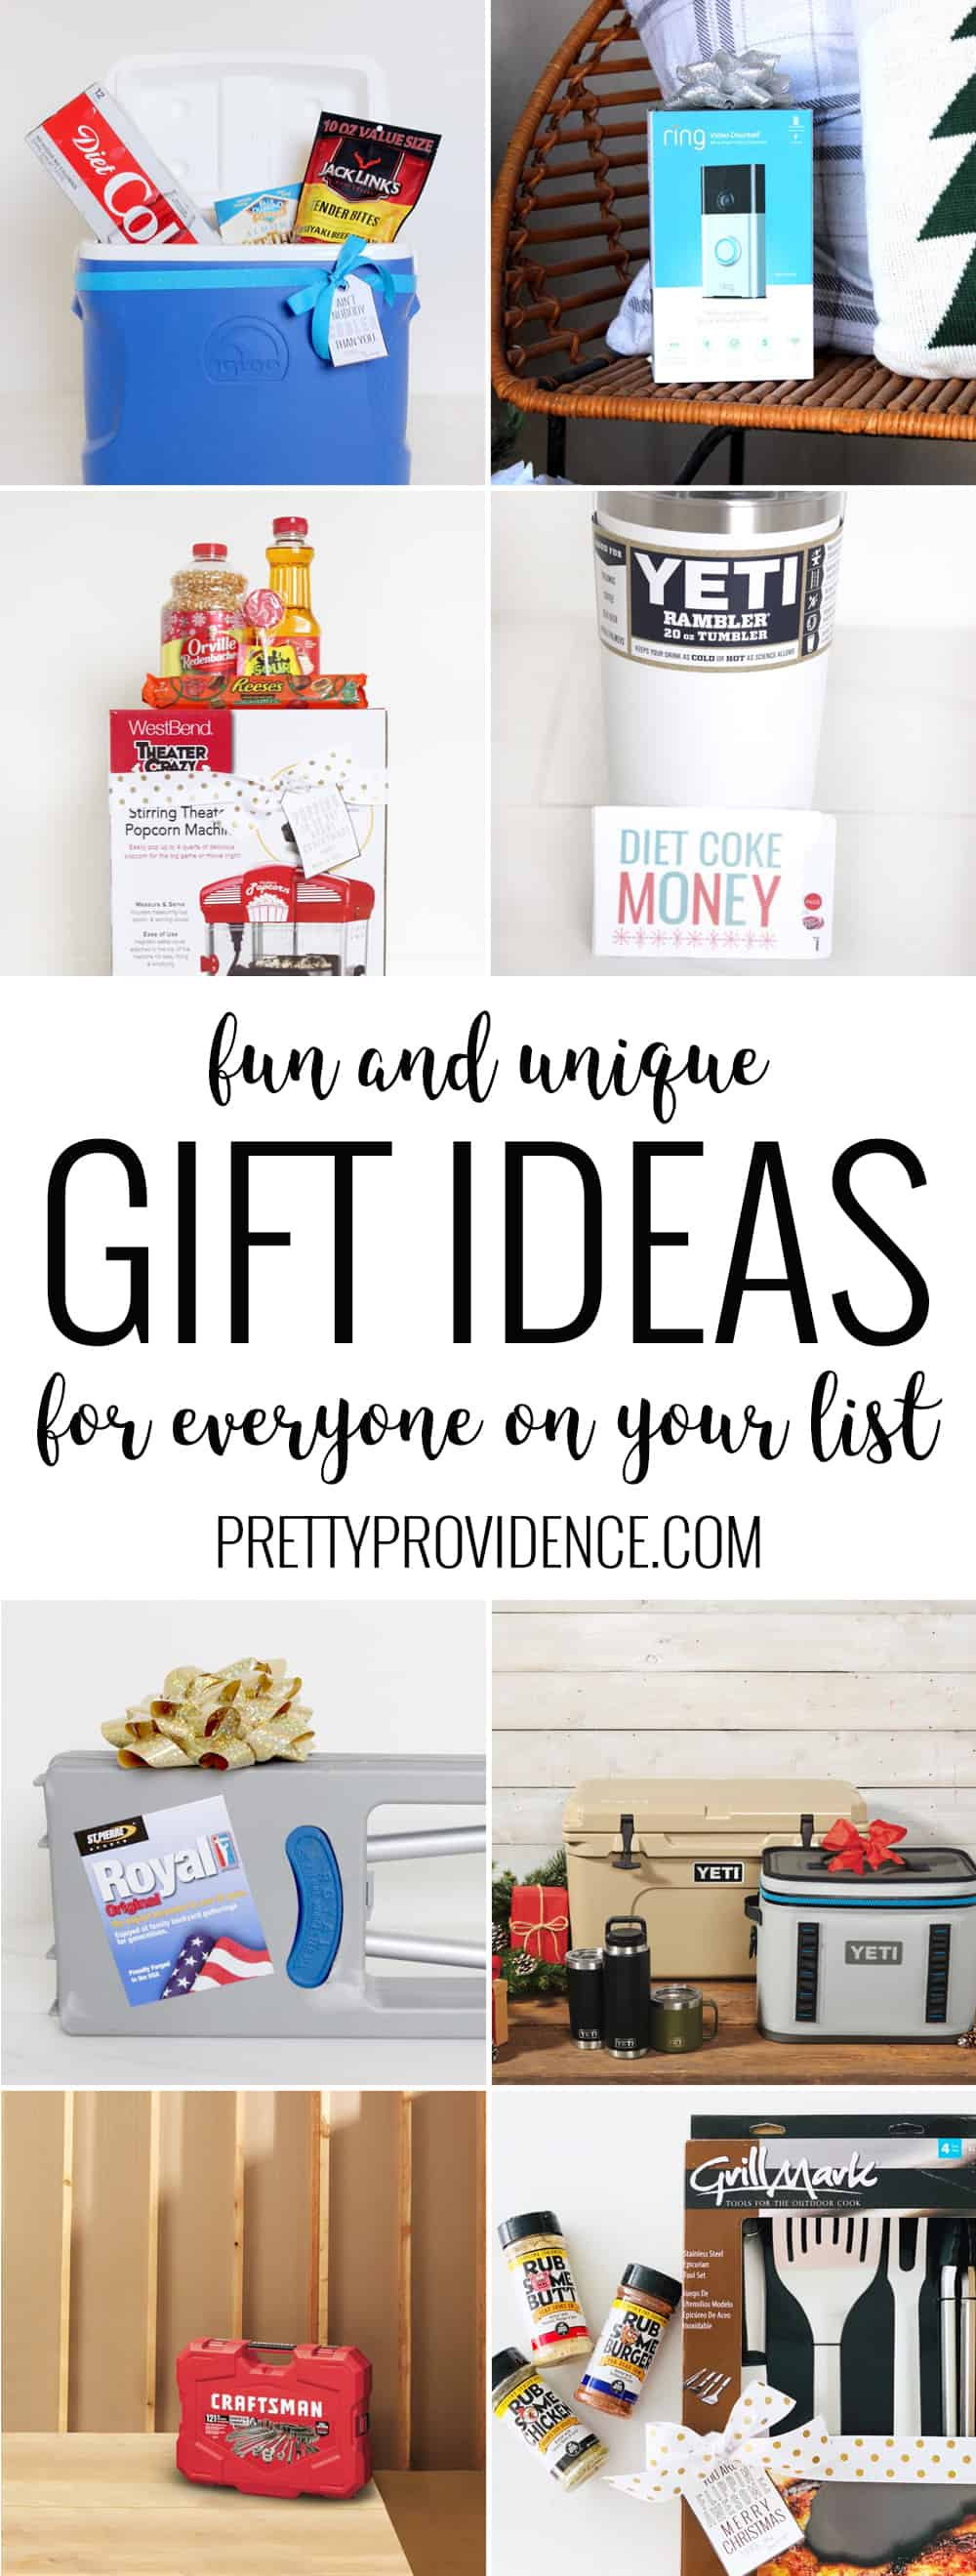 You will love these fun and unique gift ideas for everyone on your list! Perfect for a friend, neighbor, grandparents, your own family or co-workers!